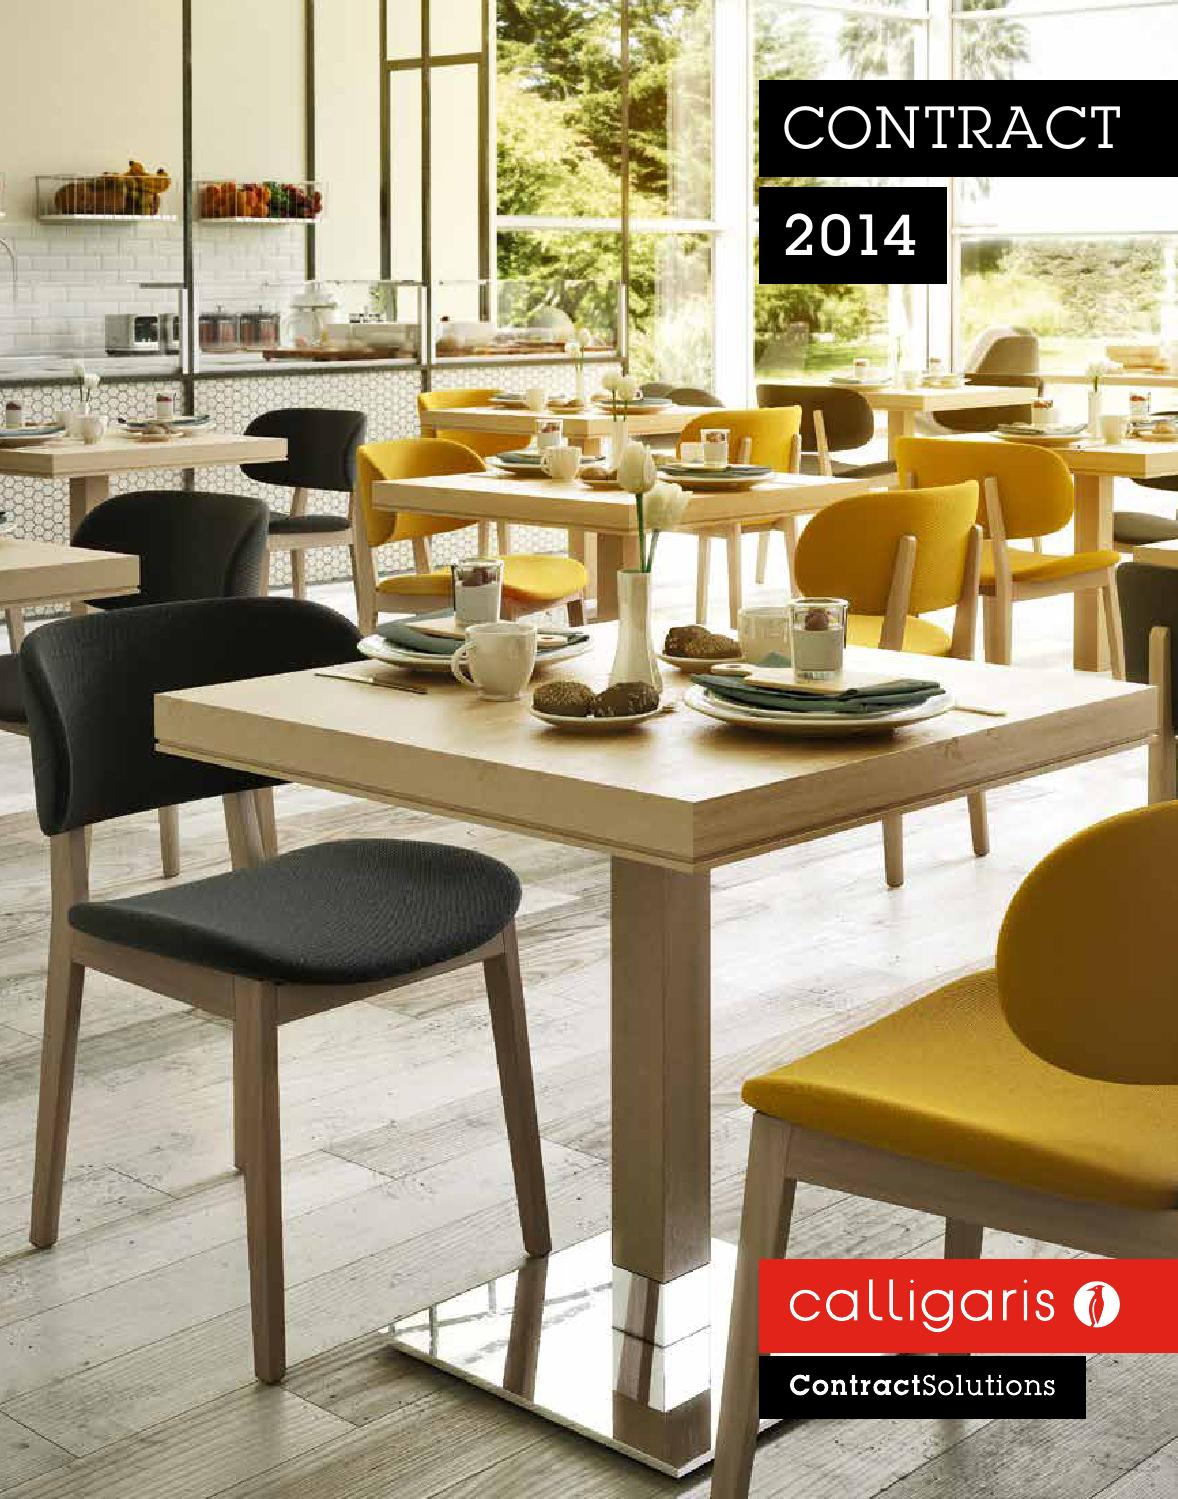 Sedia Calligaris Nuvola Catalogue Calligaris 2014 By Pulse Issuu